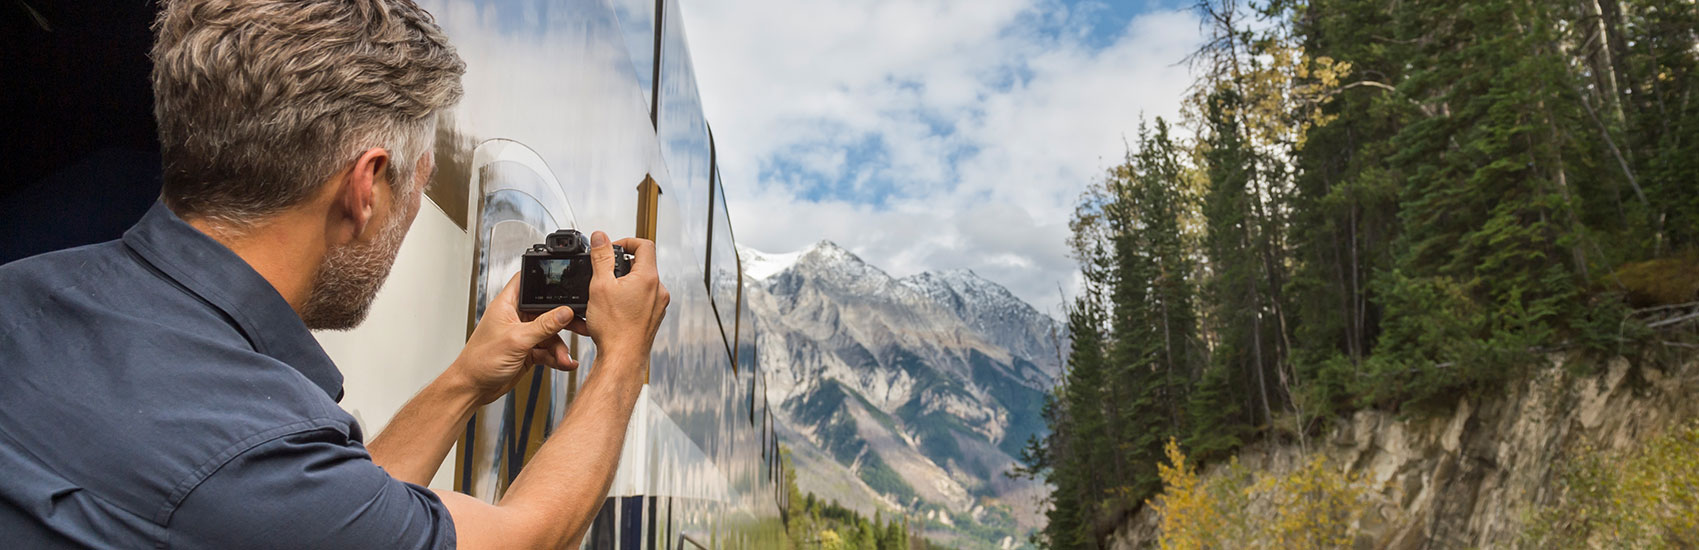 All Aboard Rocky Mountaineer in 2021